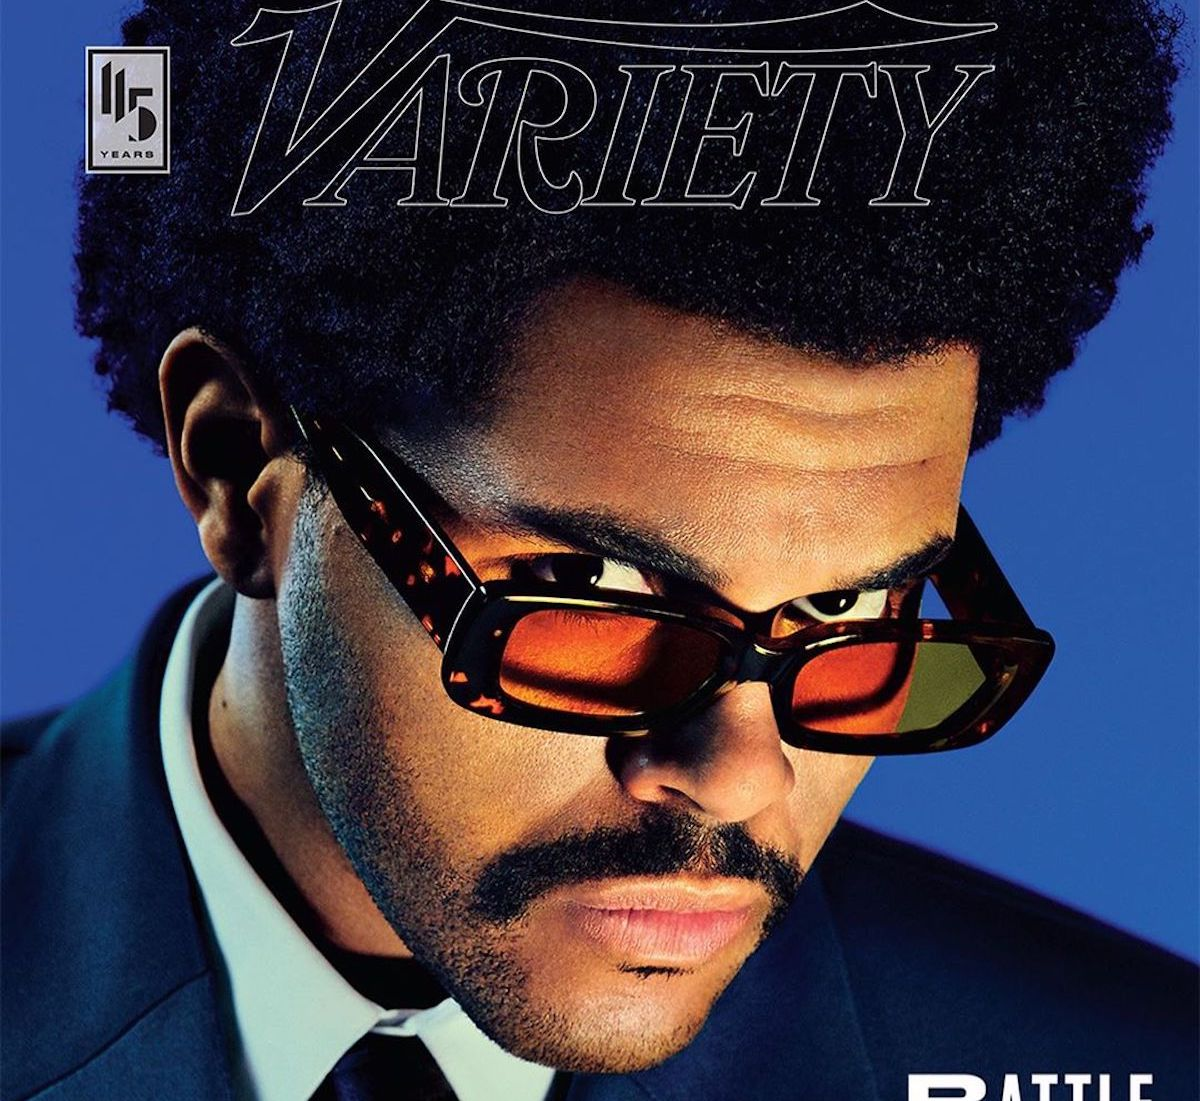 SPOTTED: The Weeknd Covers Variety Magazine in Balenciaga